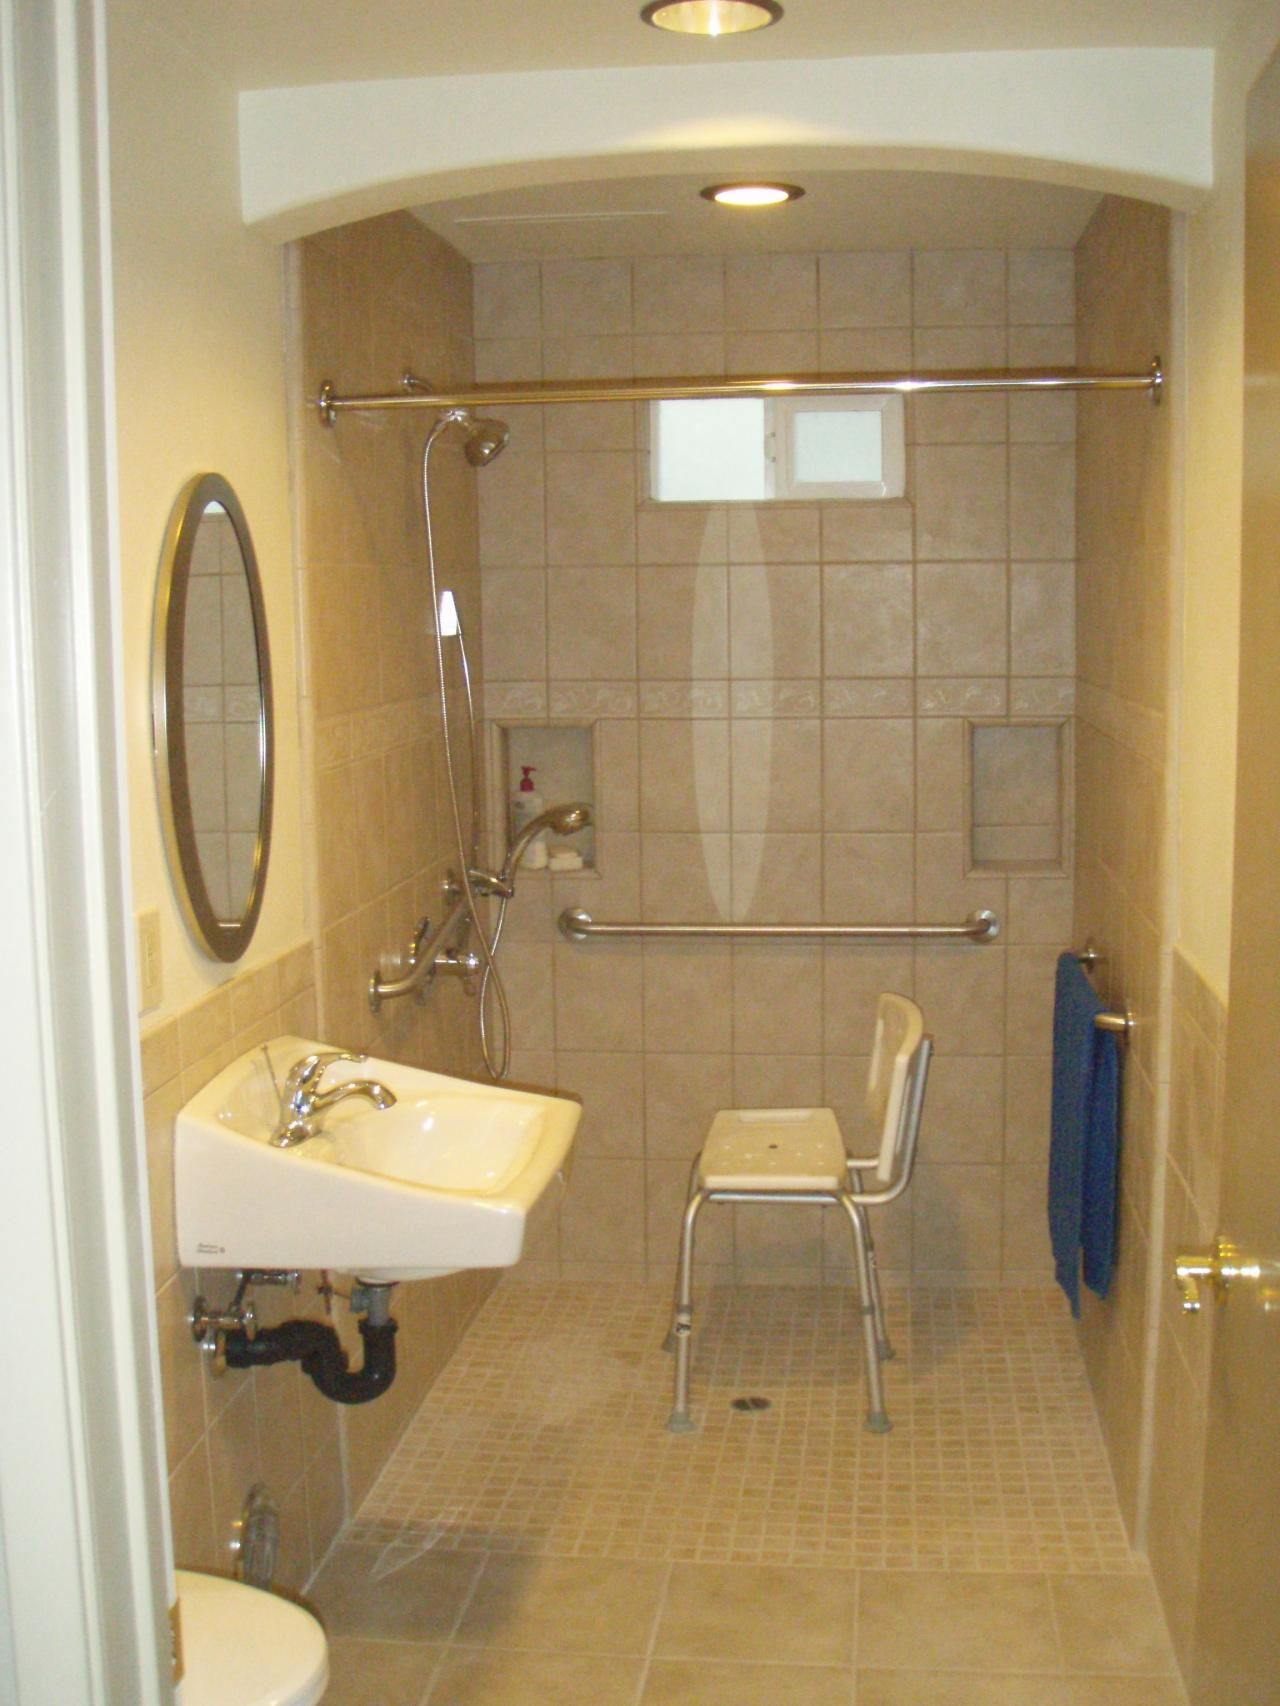 Bathroom remodels for handicapped handicapped bathroom ms hayashi torrance 11 09 bathroom - Handicap accessible bathroom design ideas ...